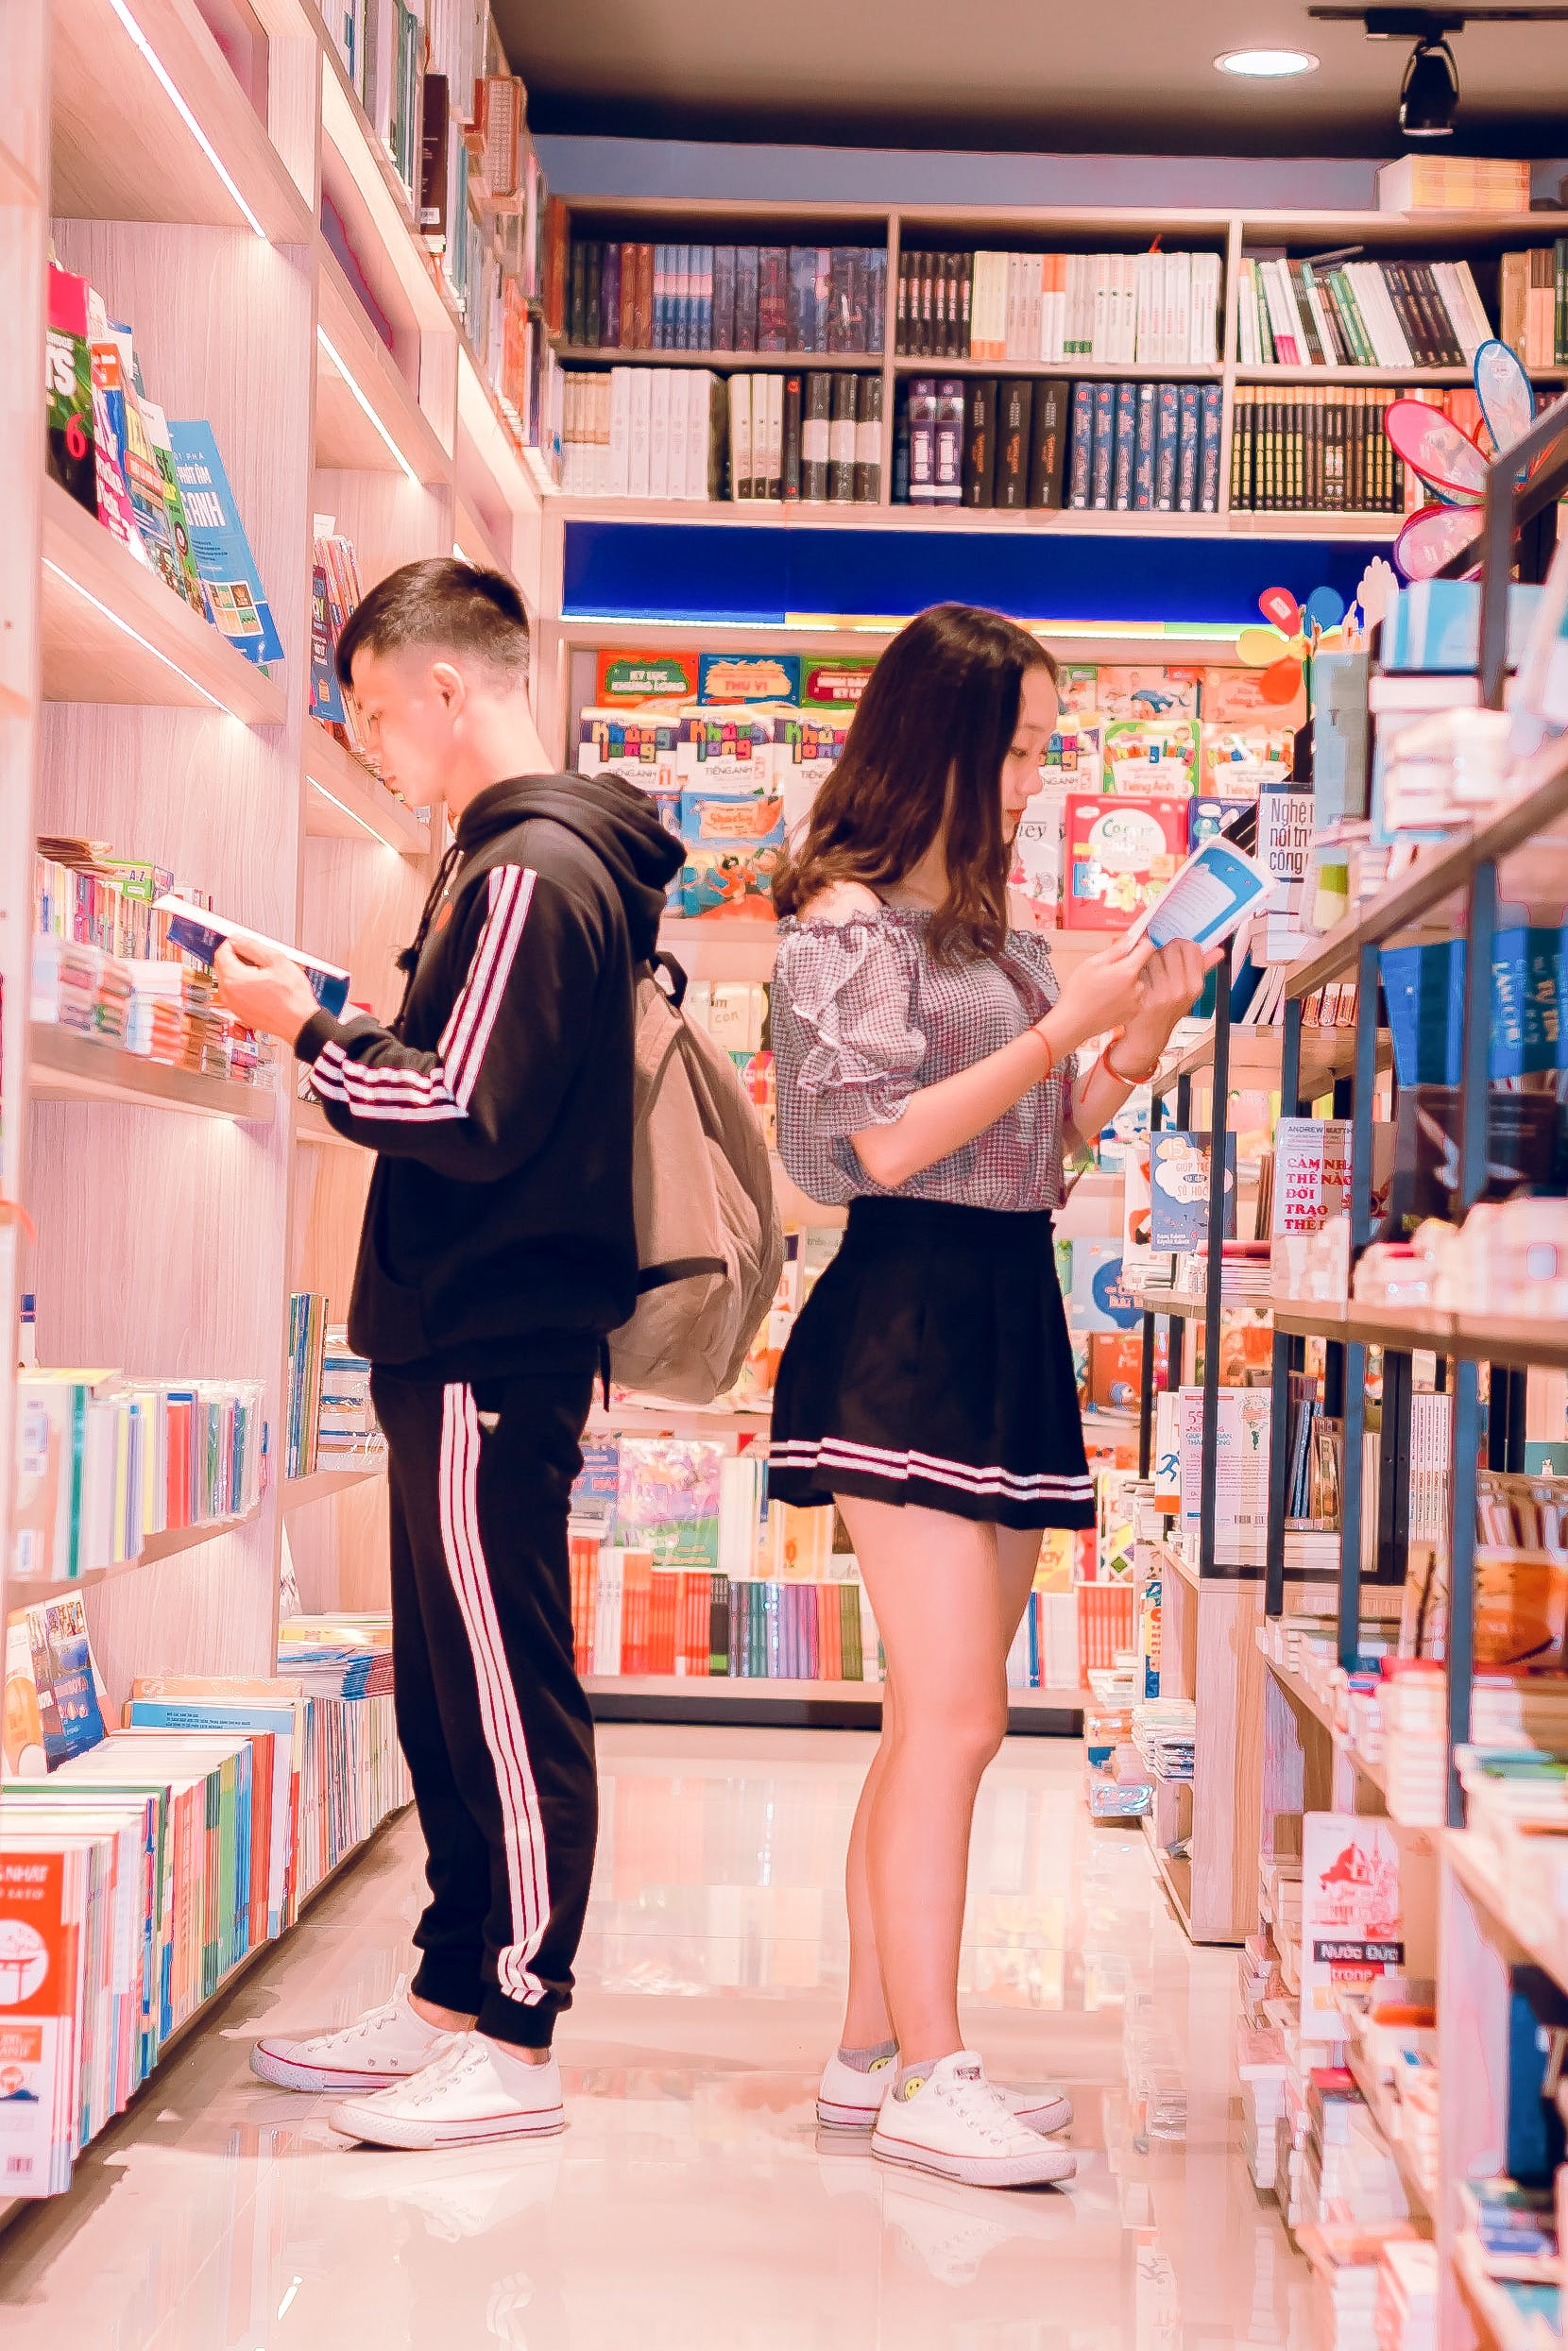 Man and Woman Reading Books